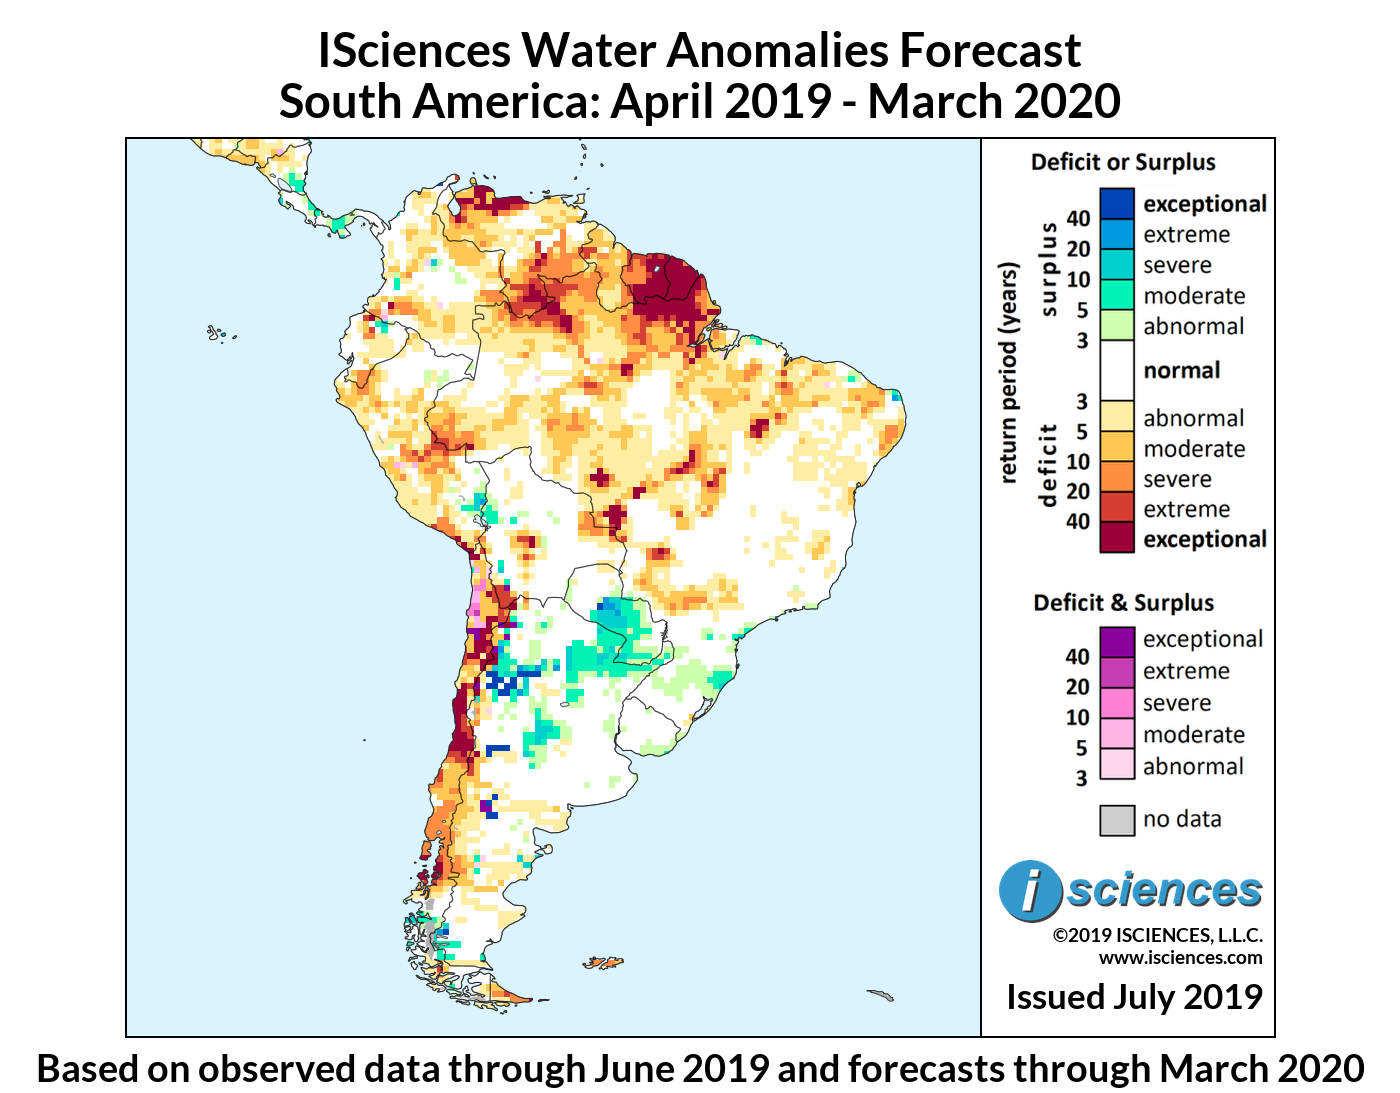 ISciences_South_America_Composite_Adjusted_201904-202003_12mo_panel.png